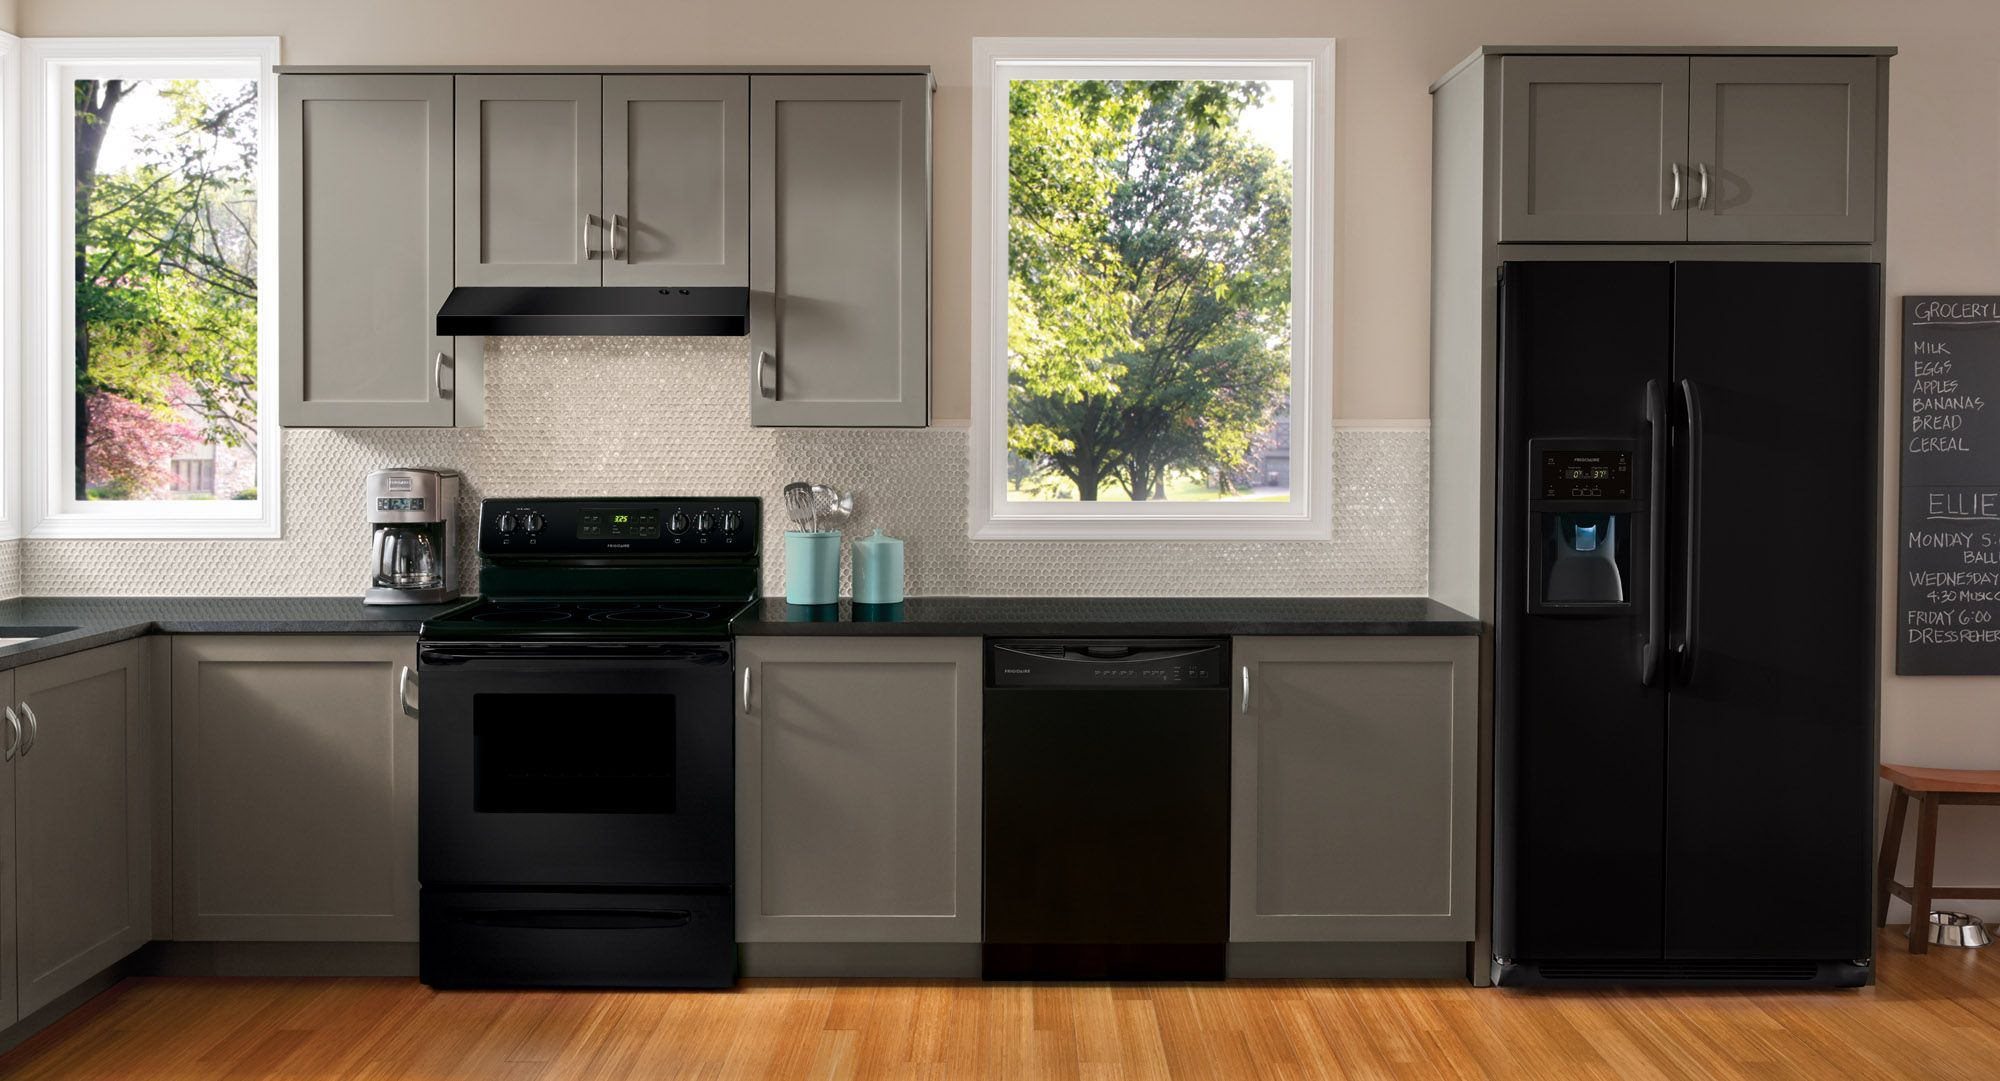 Black appliances are sleek and add contrast. Home